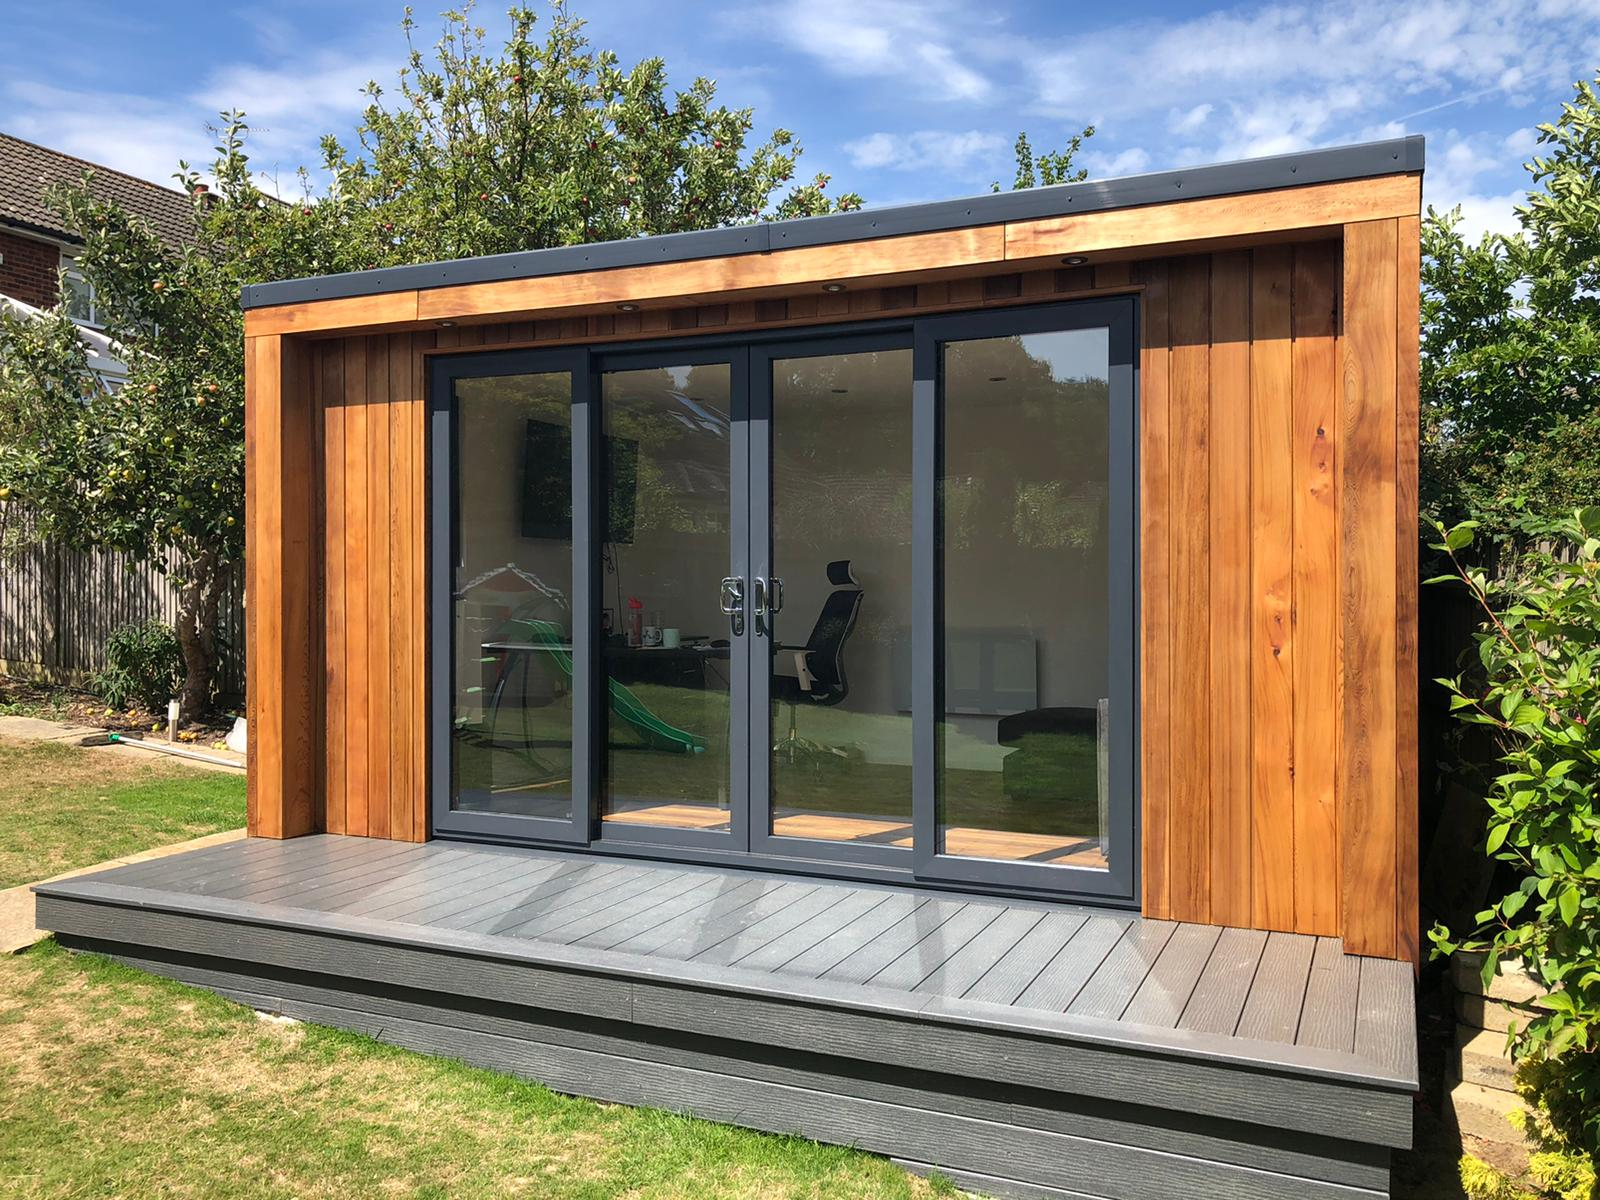 Which garden studio company would you choose?